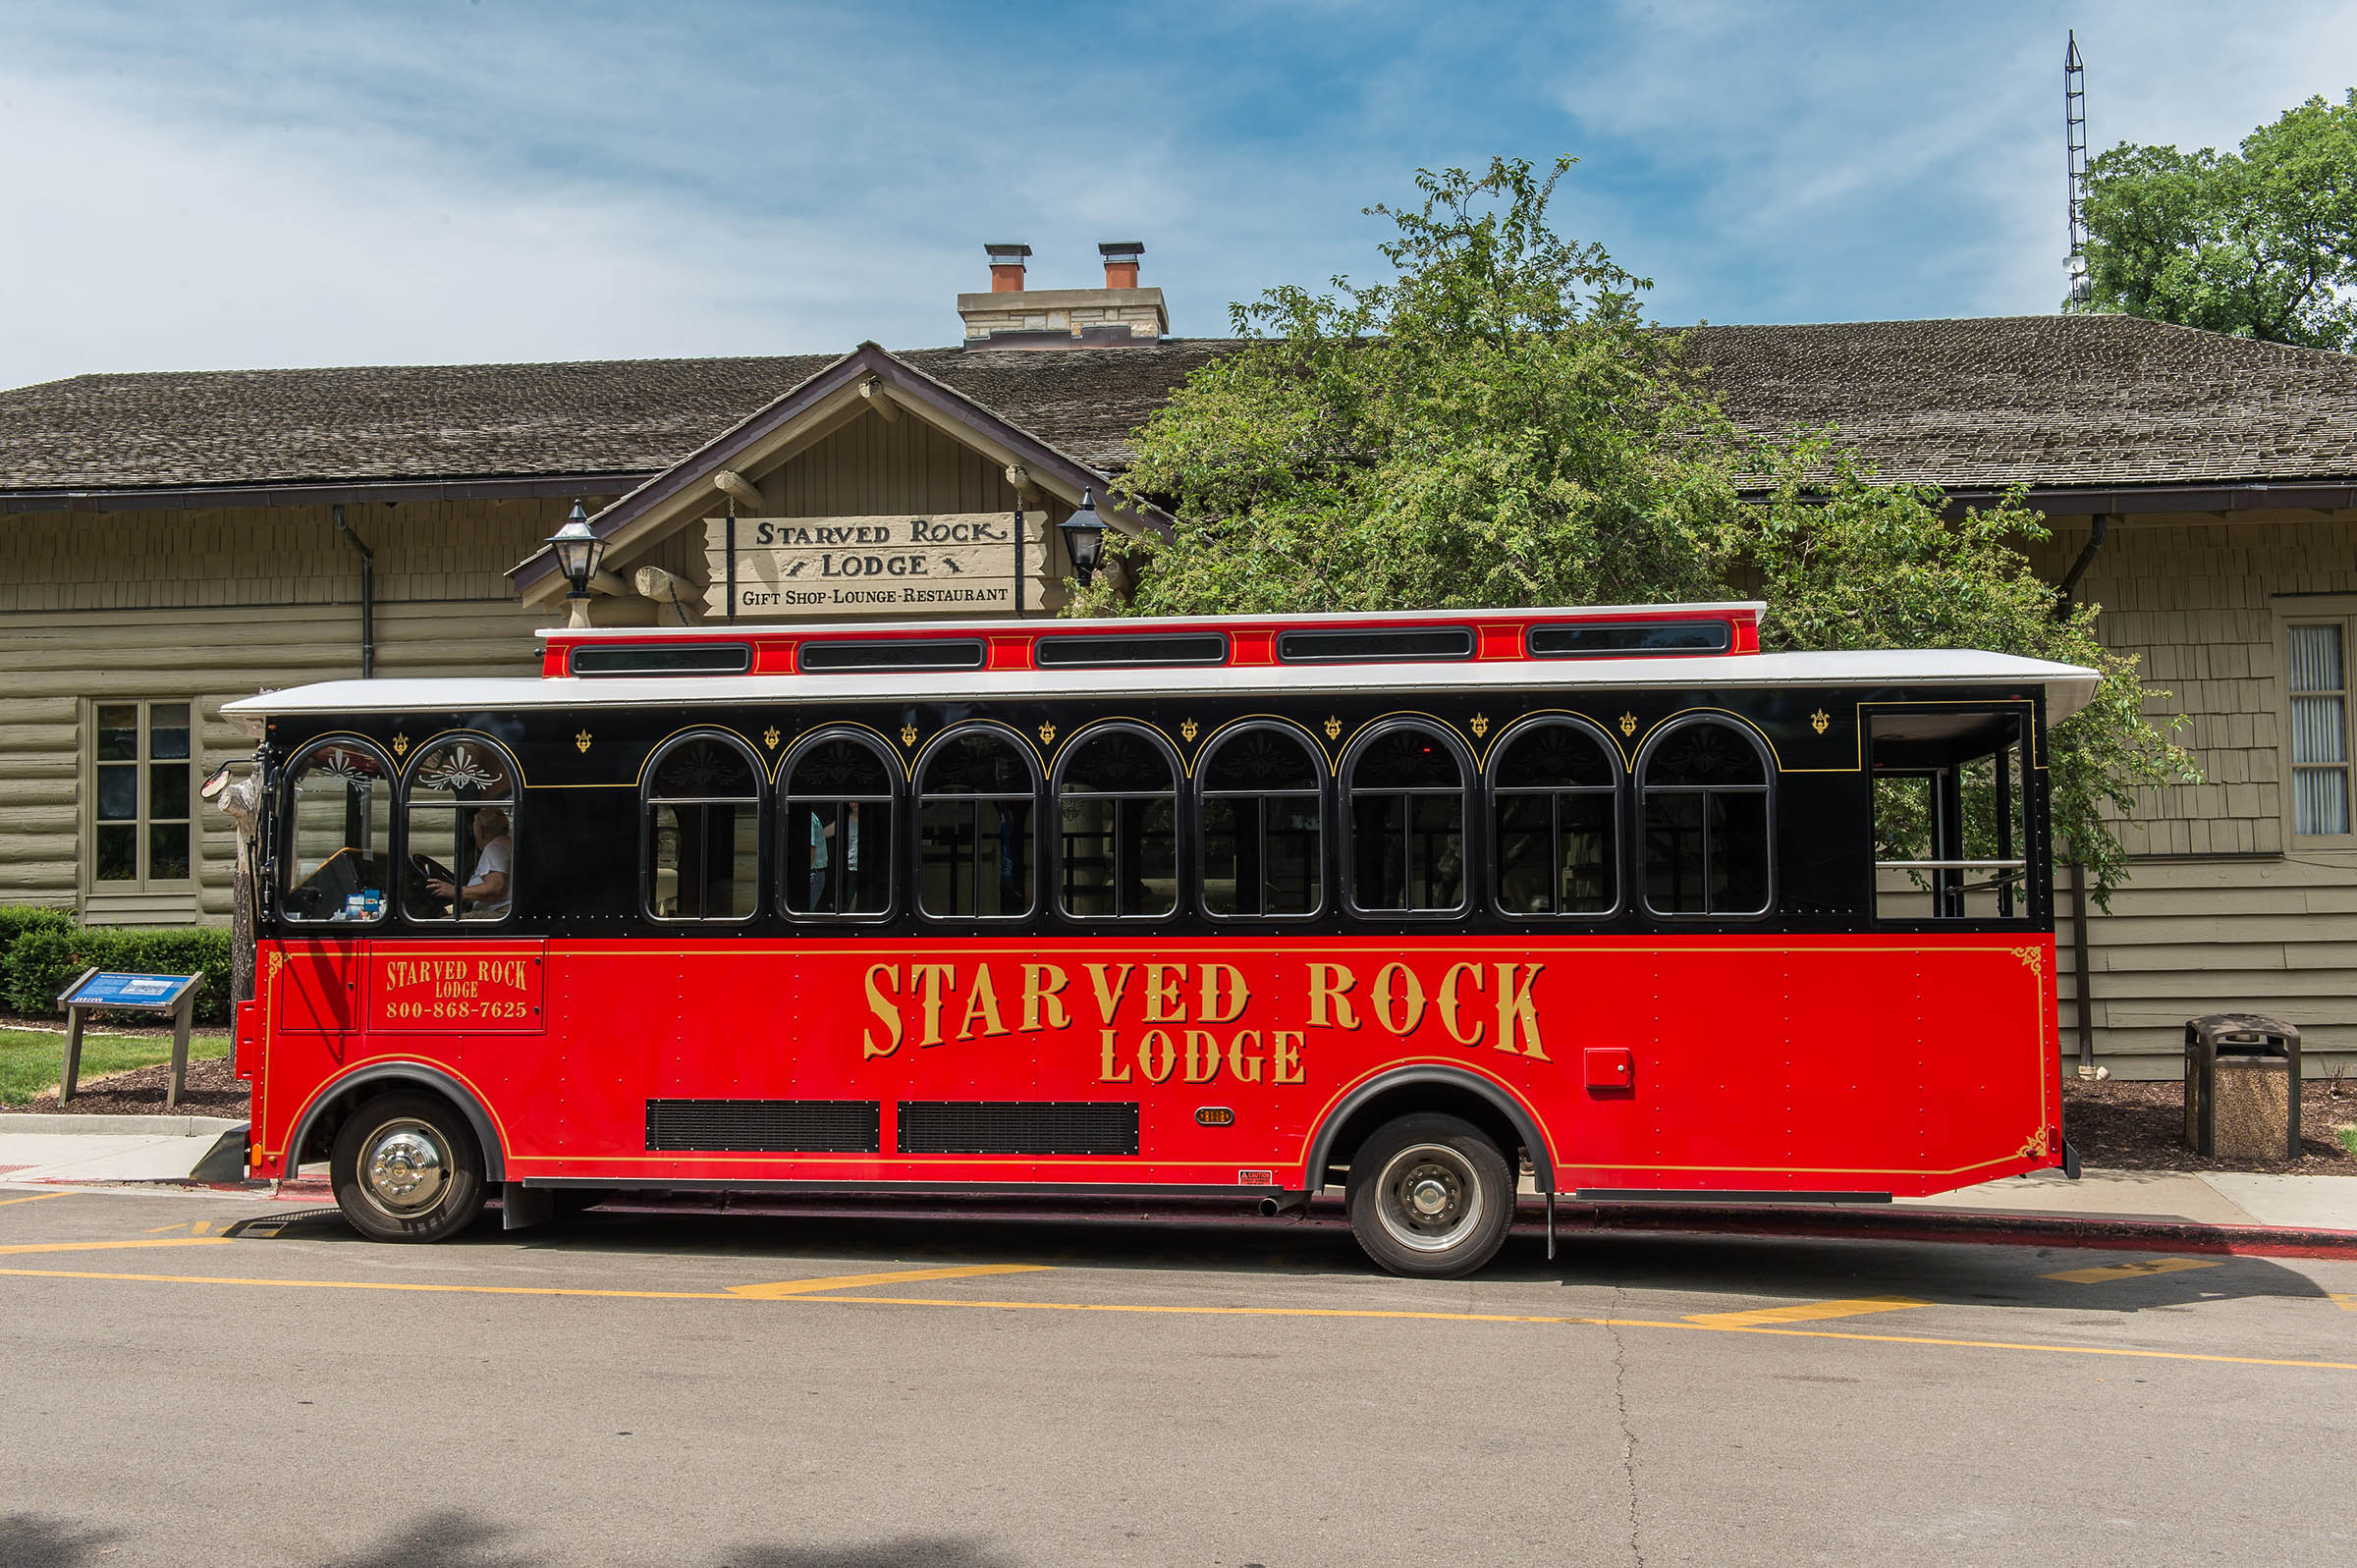 Red Trolley on streets of starved rock area